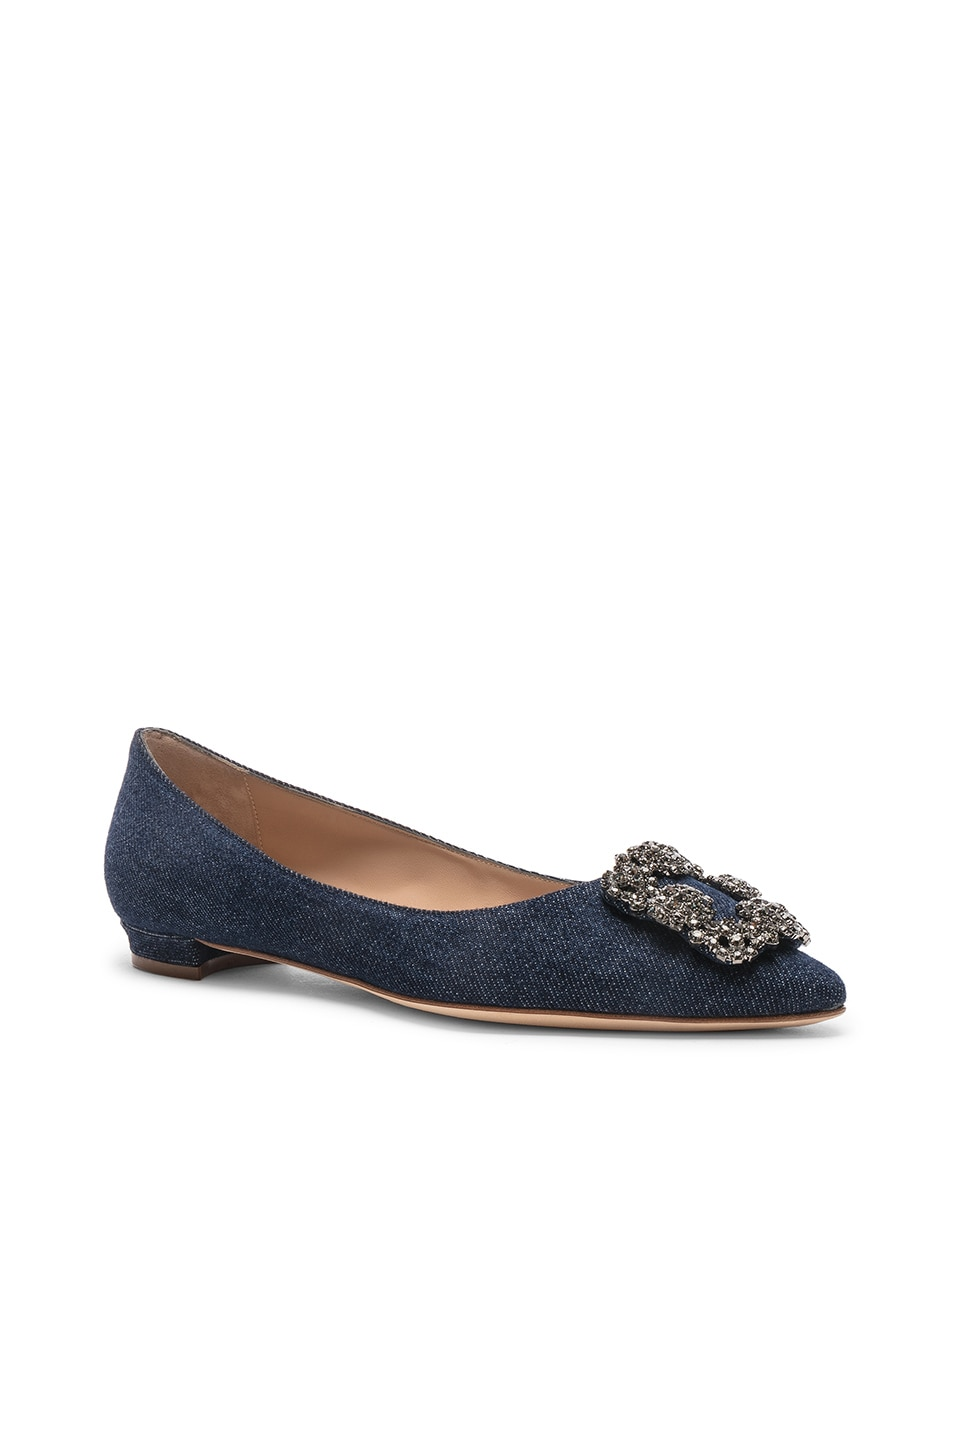 Image 2 of Manolo Blahnik Hangisiflat 10 Pea Flat in Jeans Delave